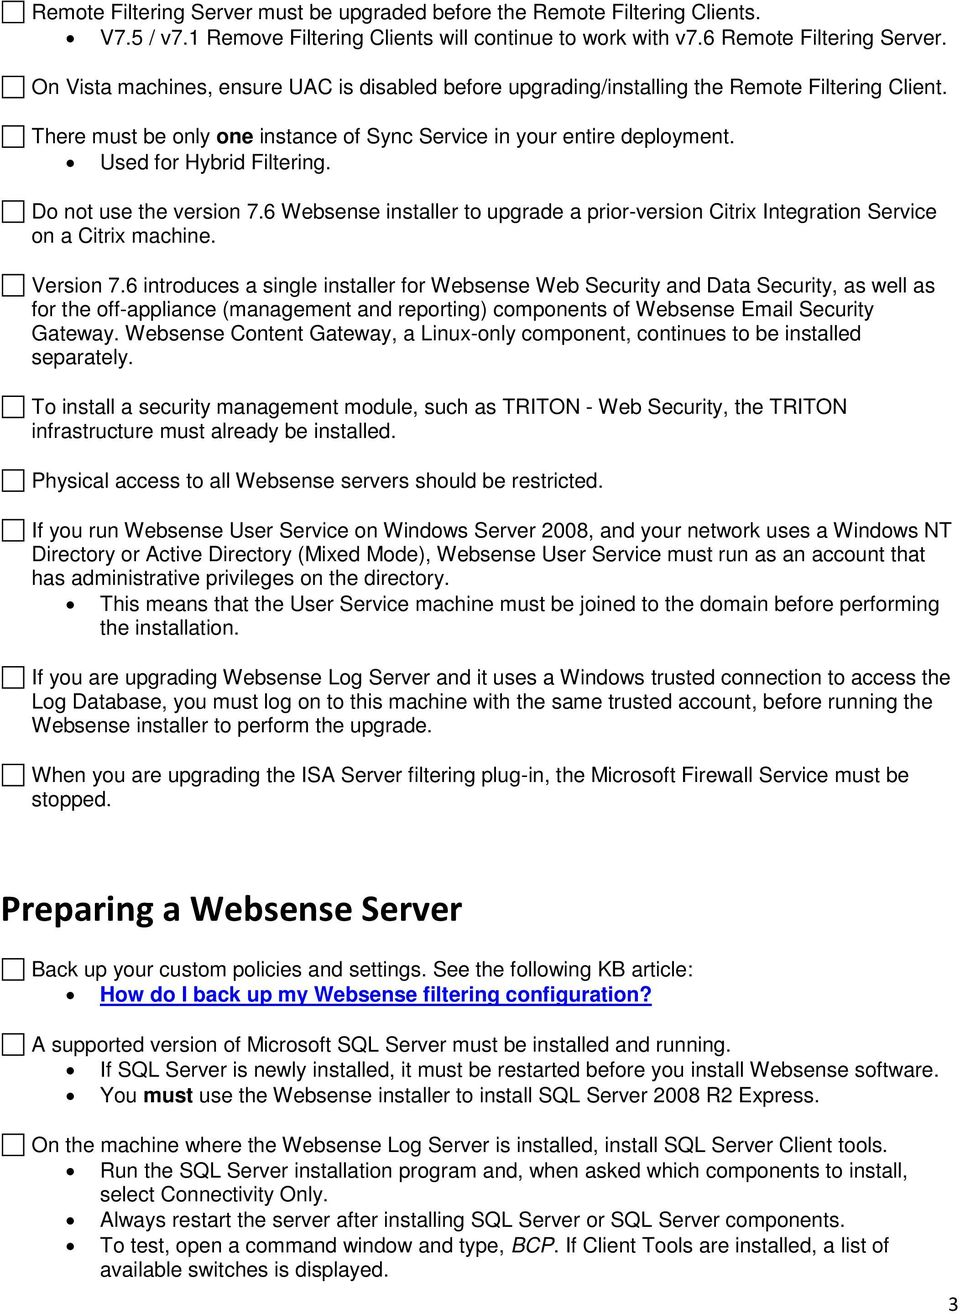 Do not use the version 7.6 Websense installer to upgrade a prior-version Citrix Integration Service on a Citrix machine. Version 7.